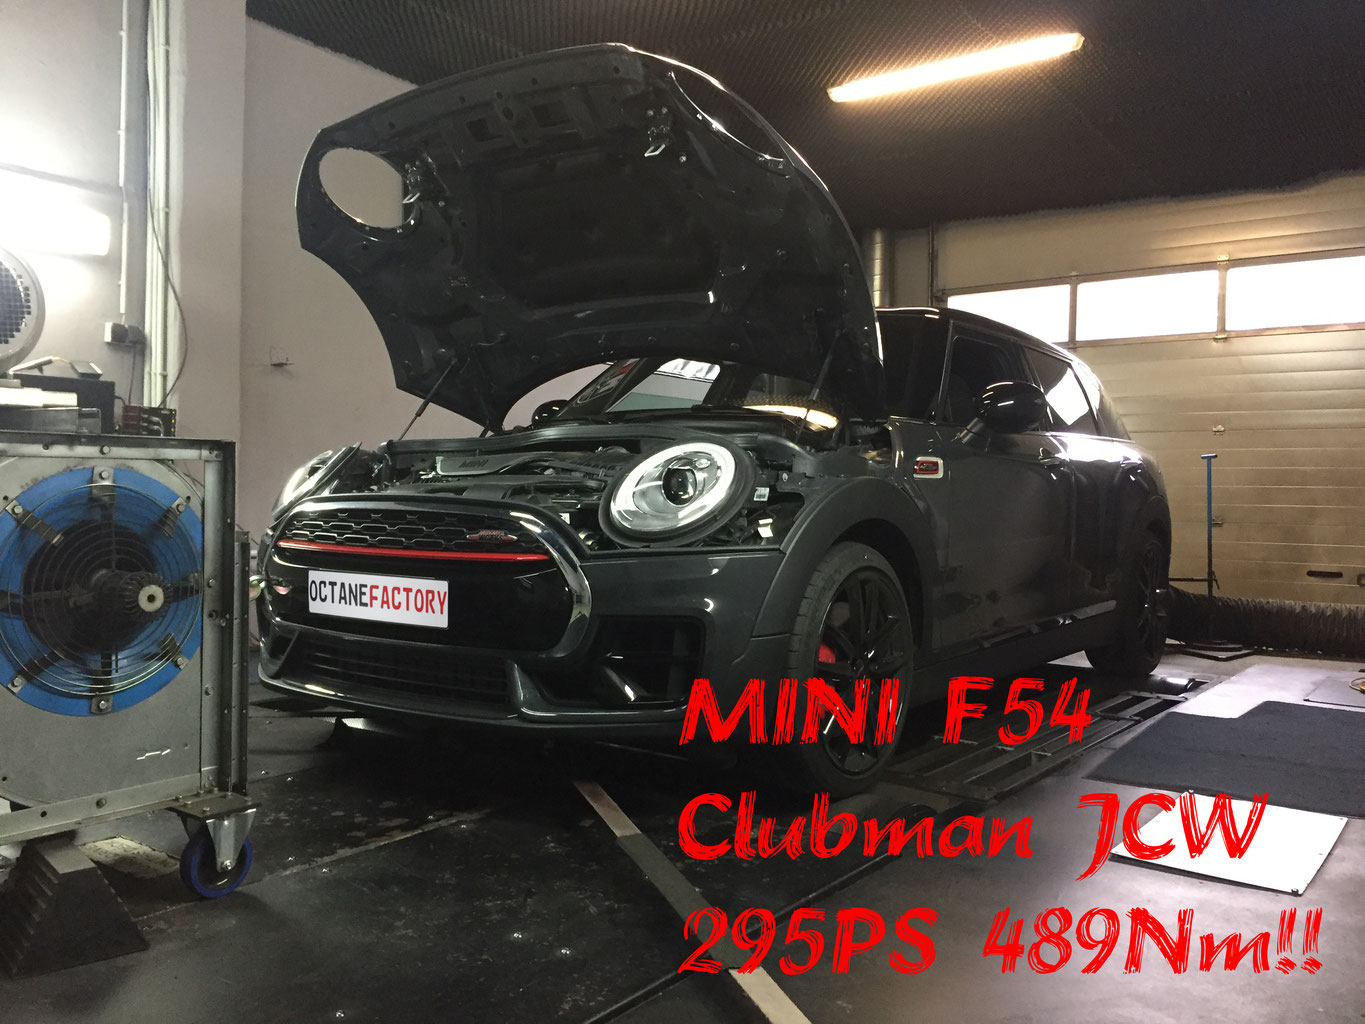 Tuning News Octanefactory Mini Tuning Shop